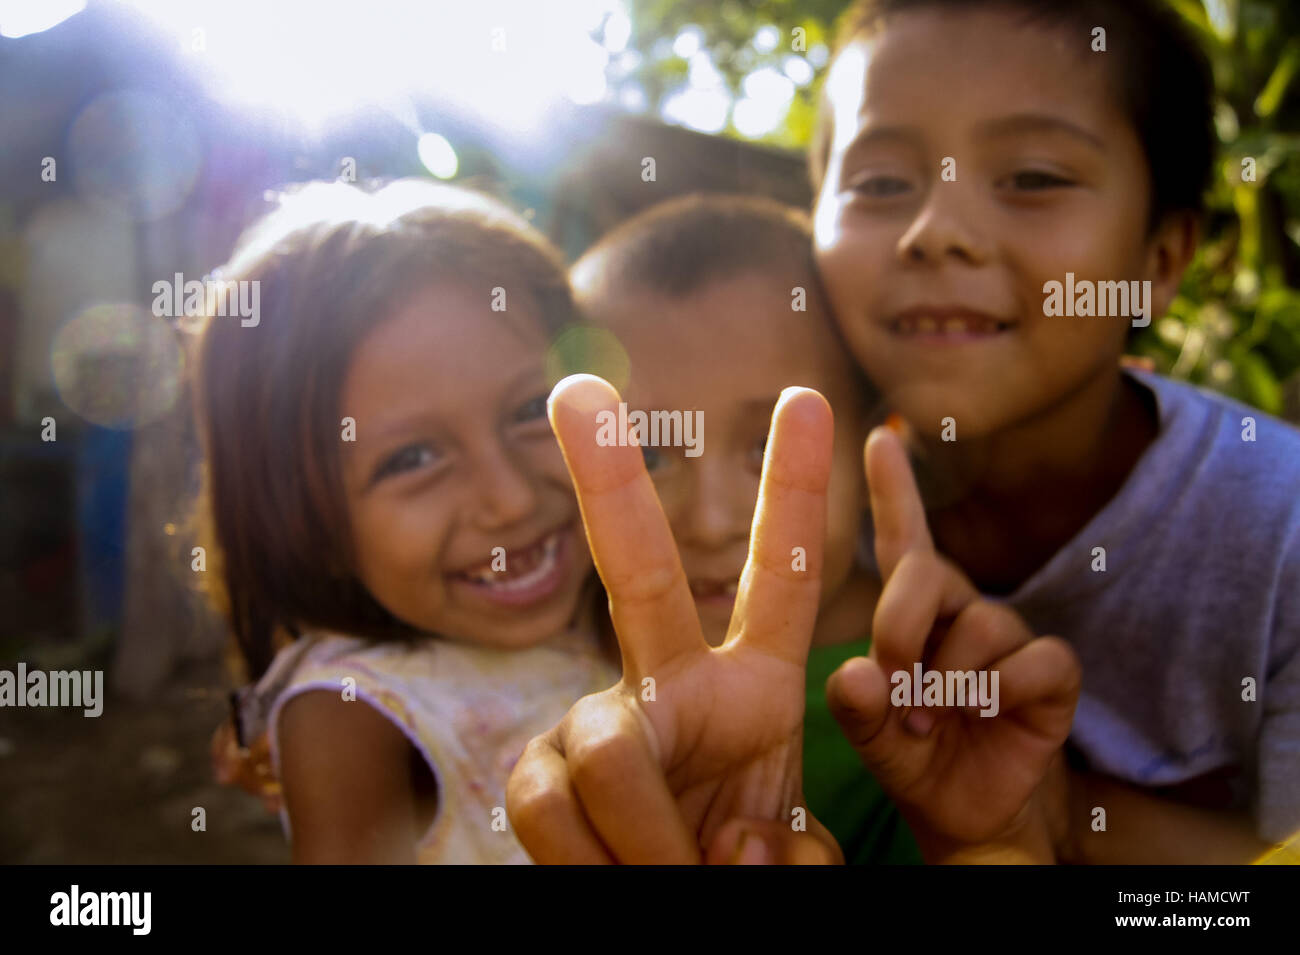 Honduras:  Playful, happy children giving the Peace sign. - Stock Image